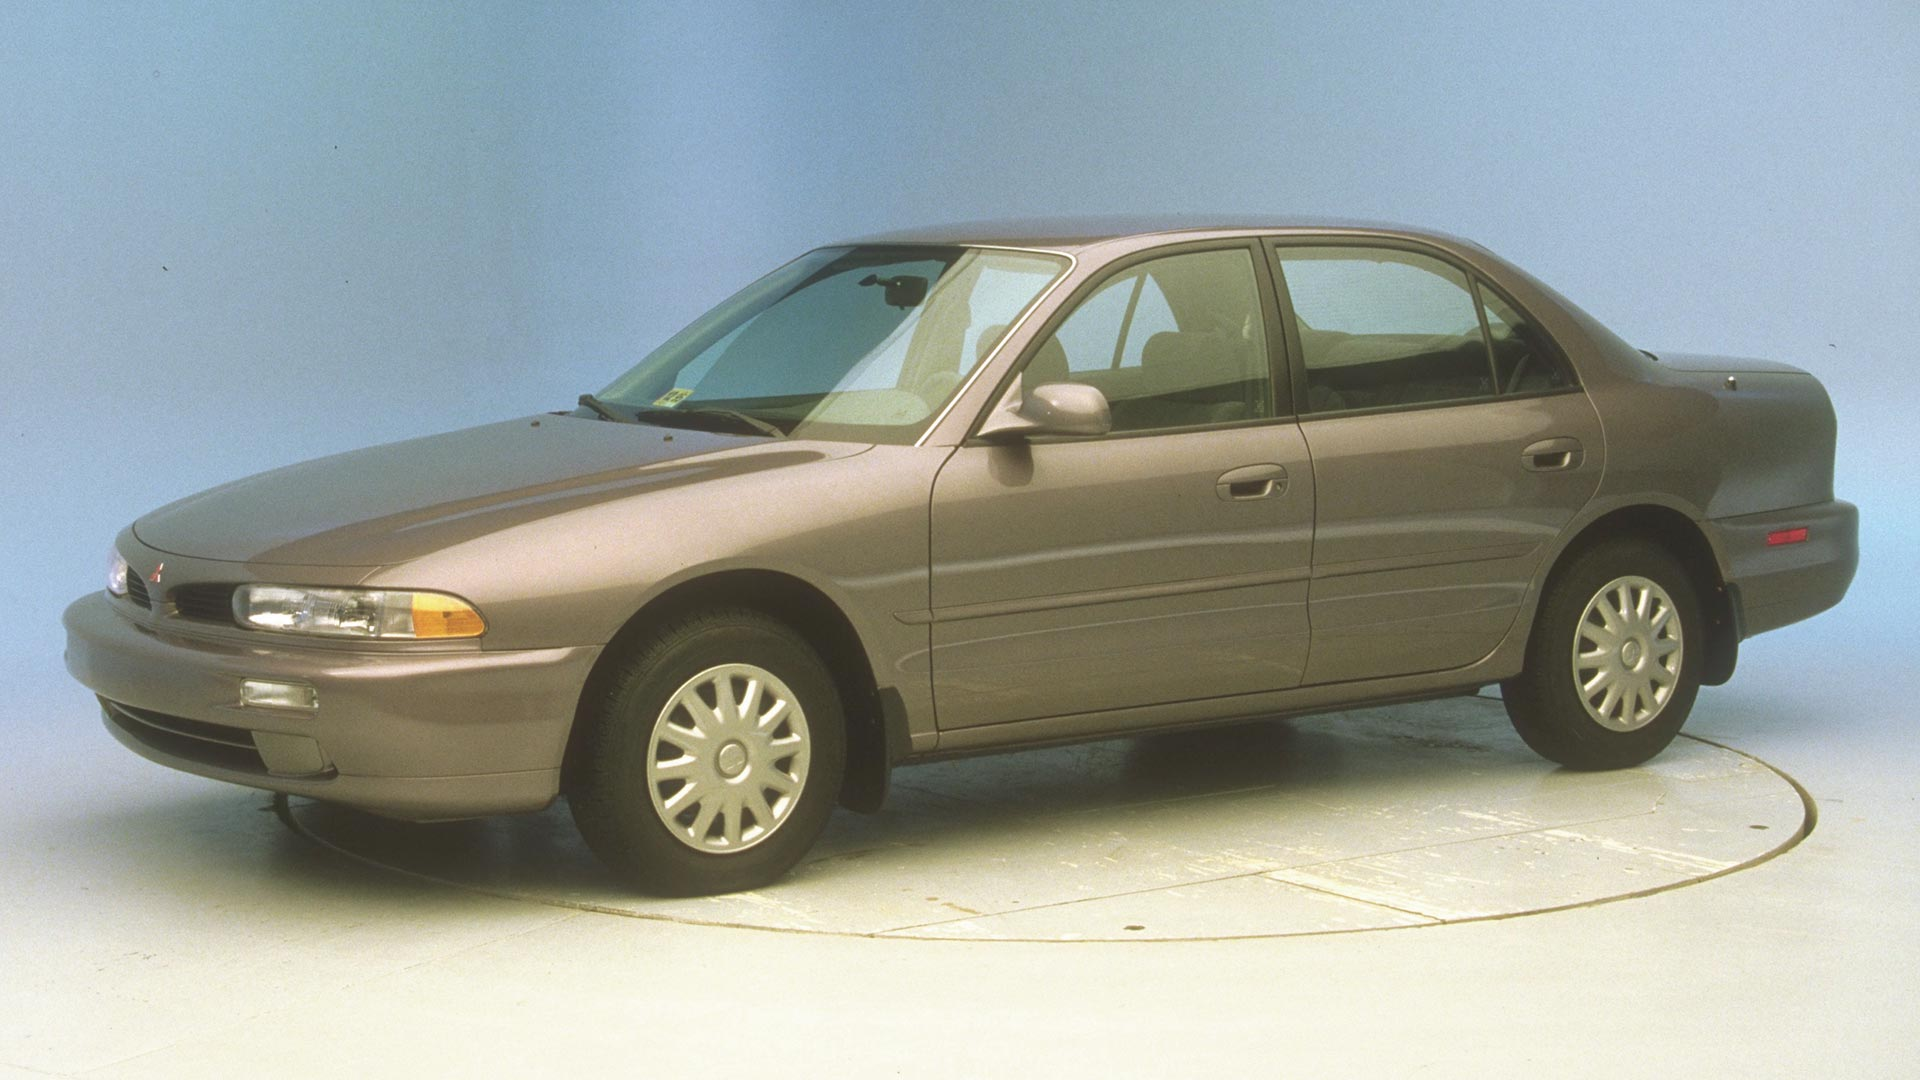 1995 Mitsubishi Galant 4-door sedan